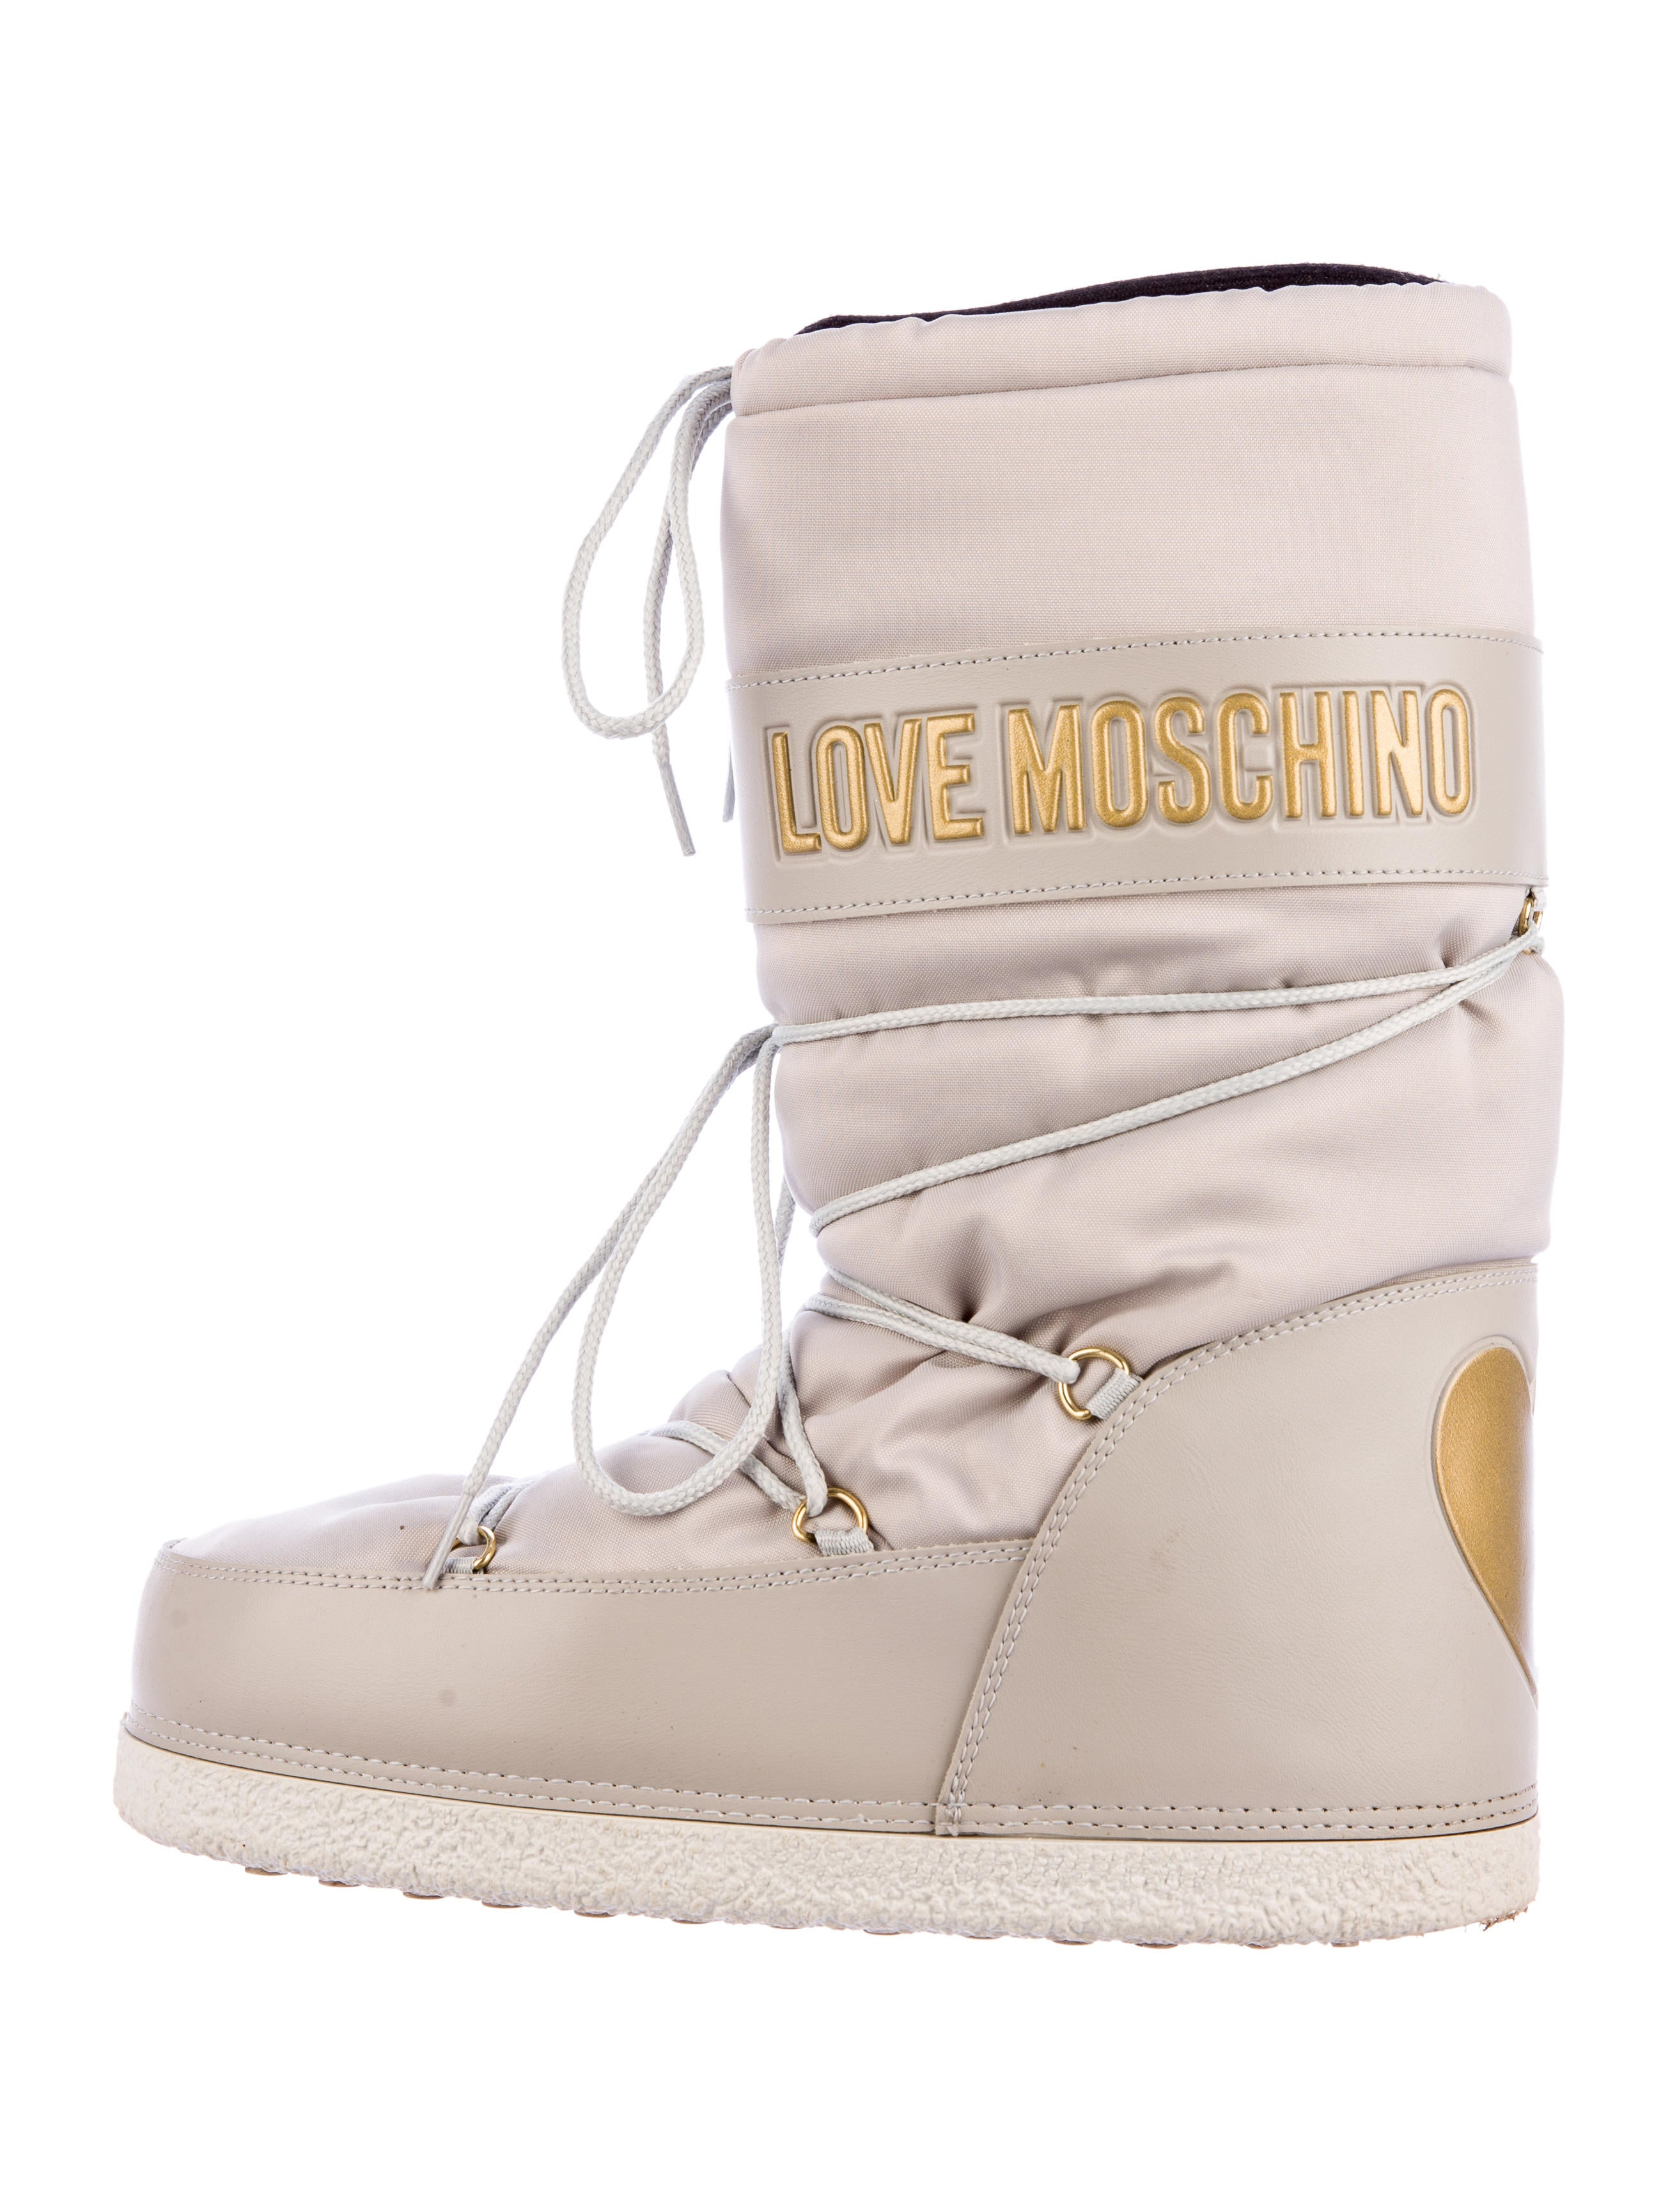 Love Moschino Snow Boots - Shoes - WLH20080 | The RealReal